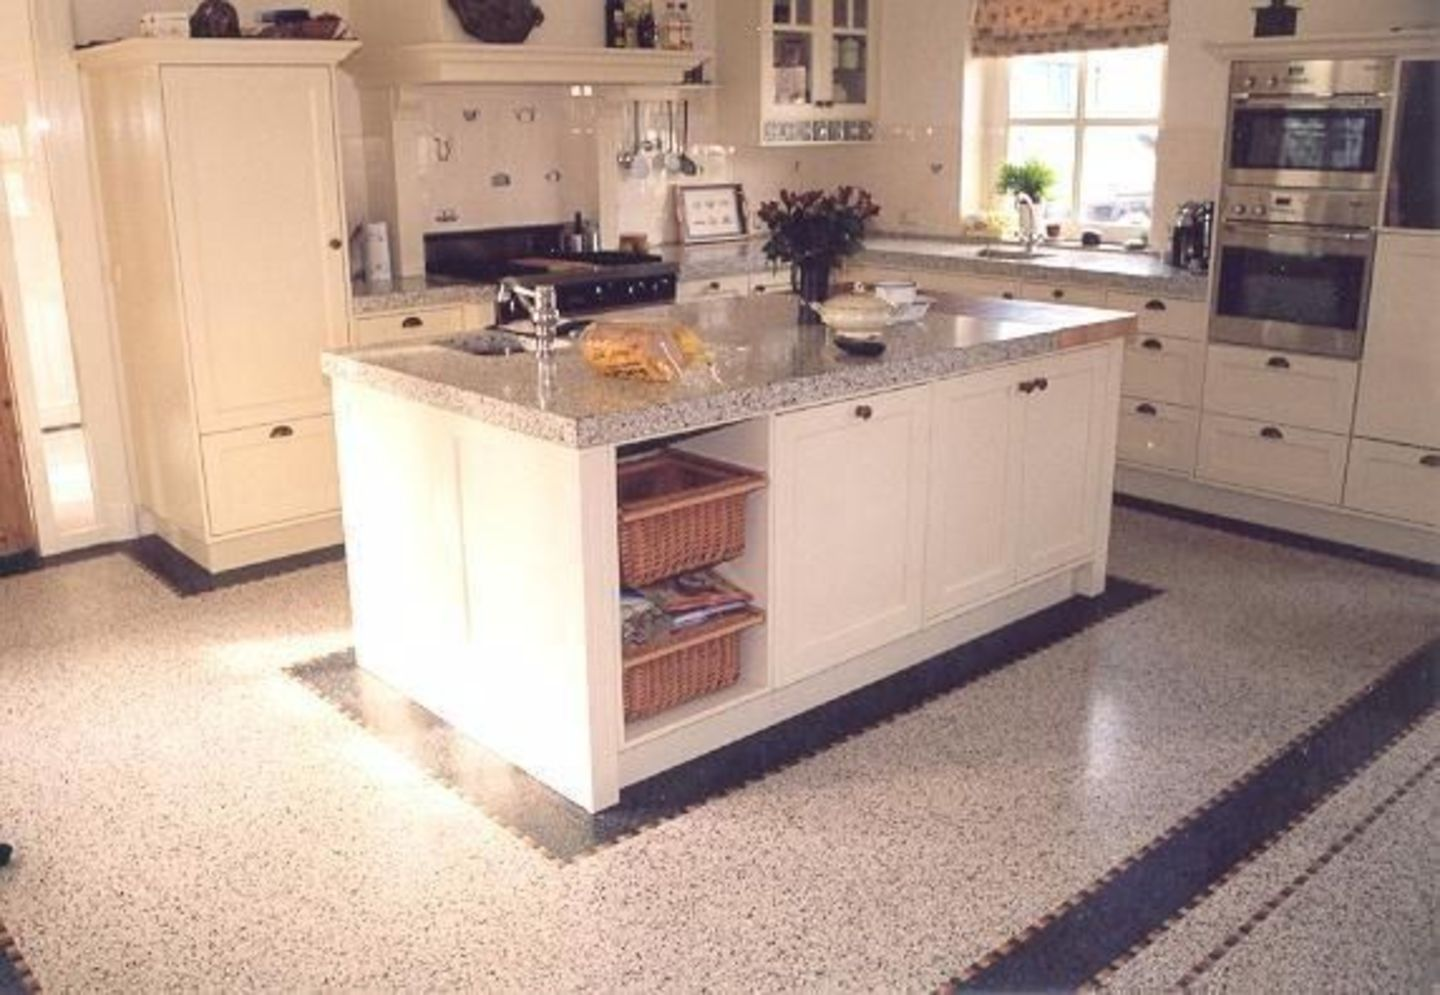 Amazing terrazzo decoration revival giving a cozy look in a warm and friendly interior scheme Image 5